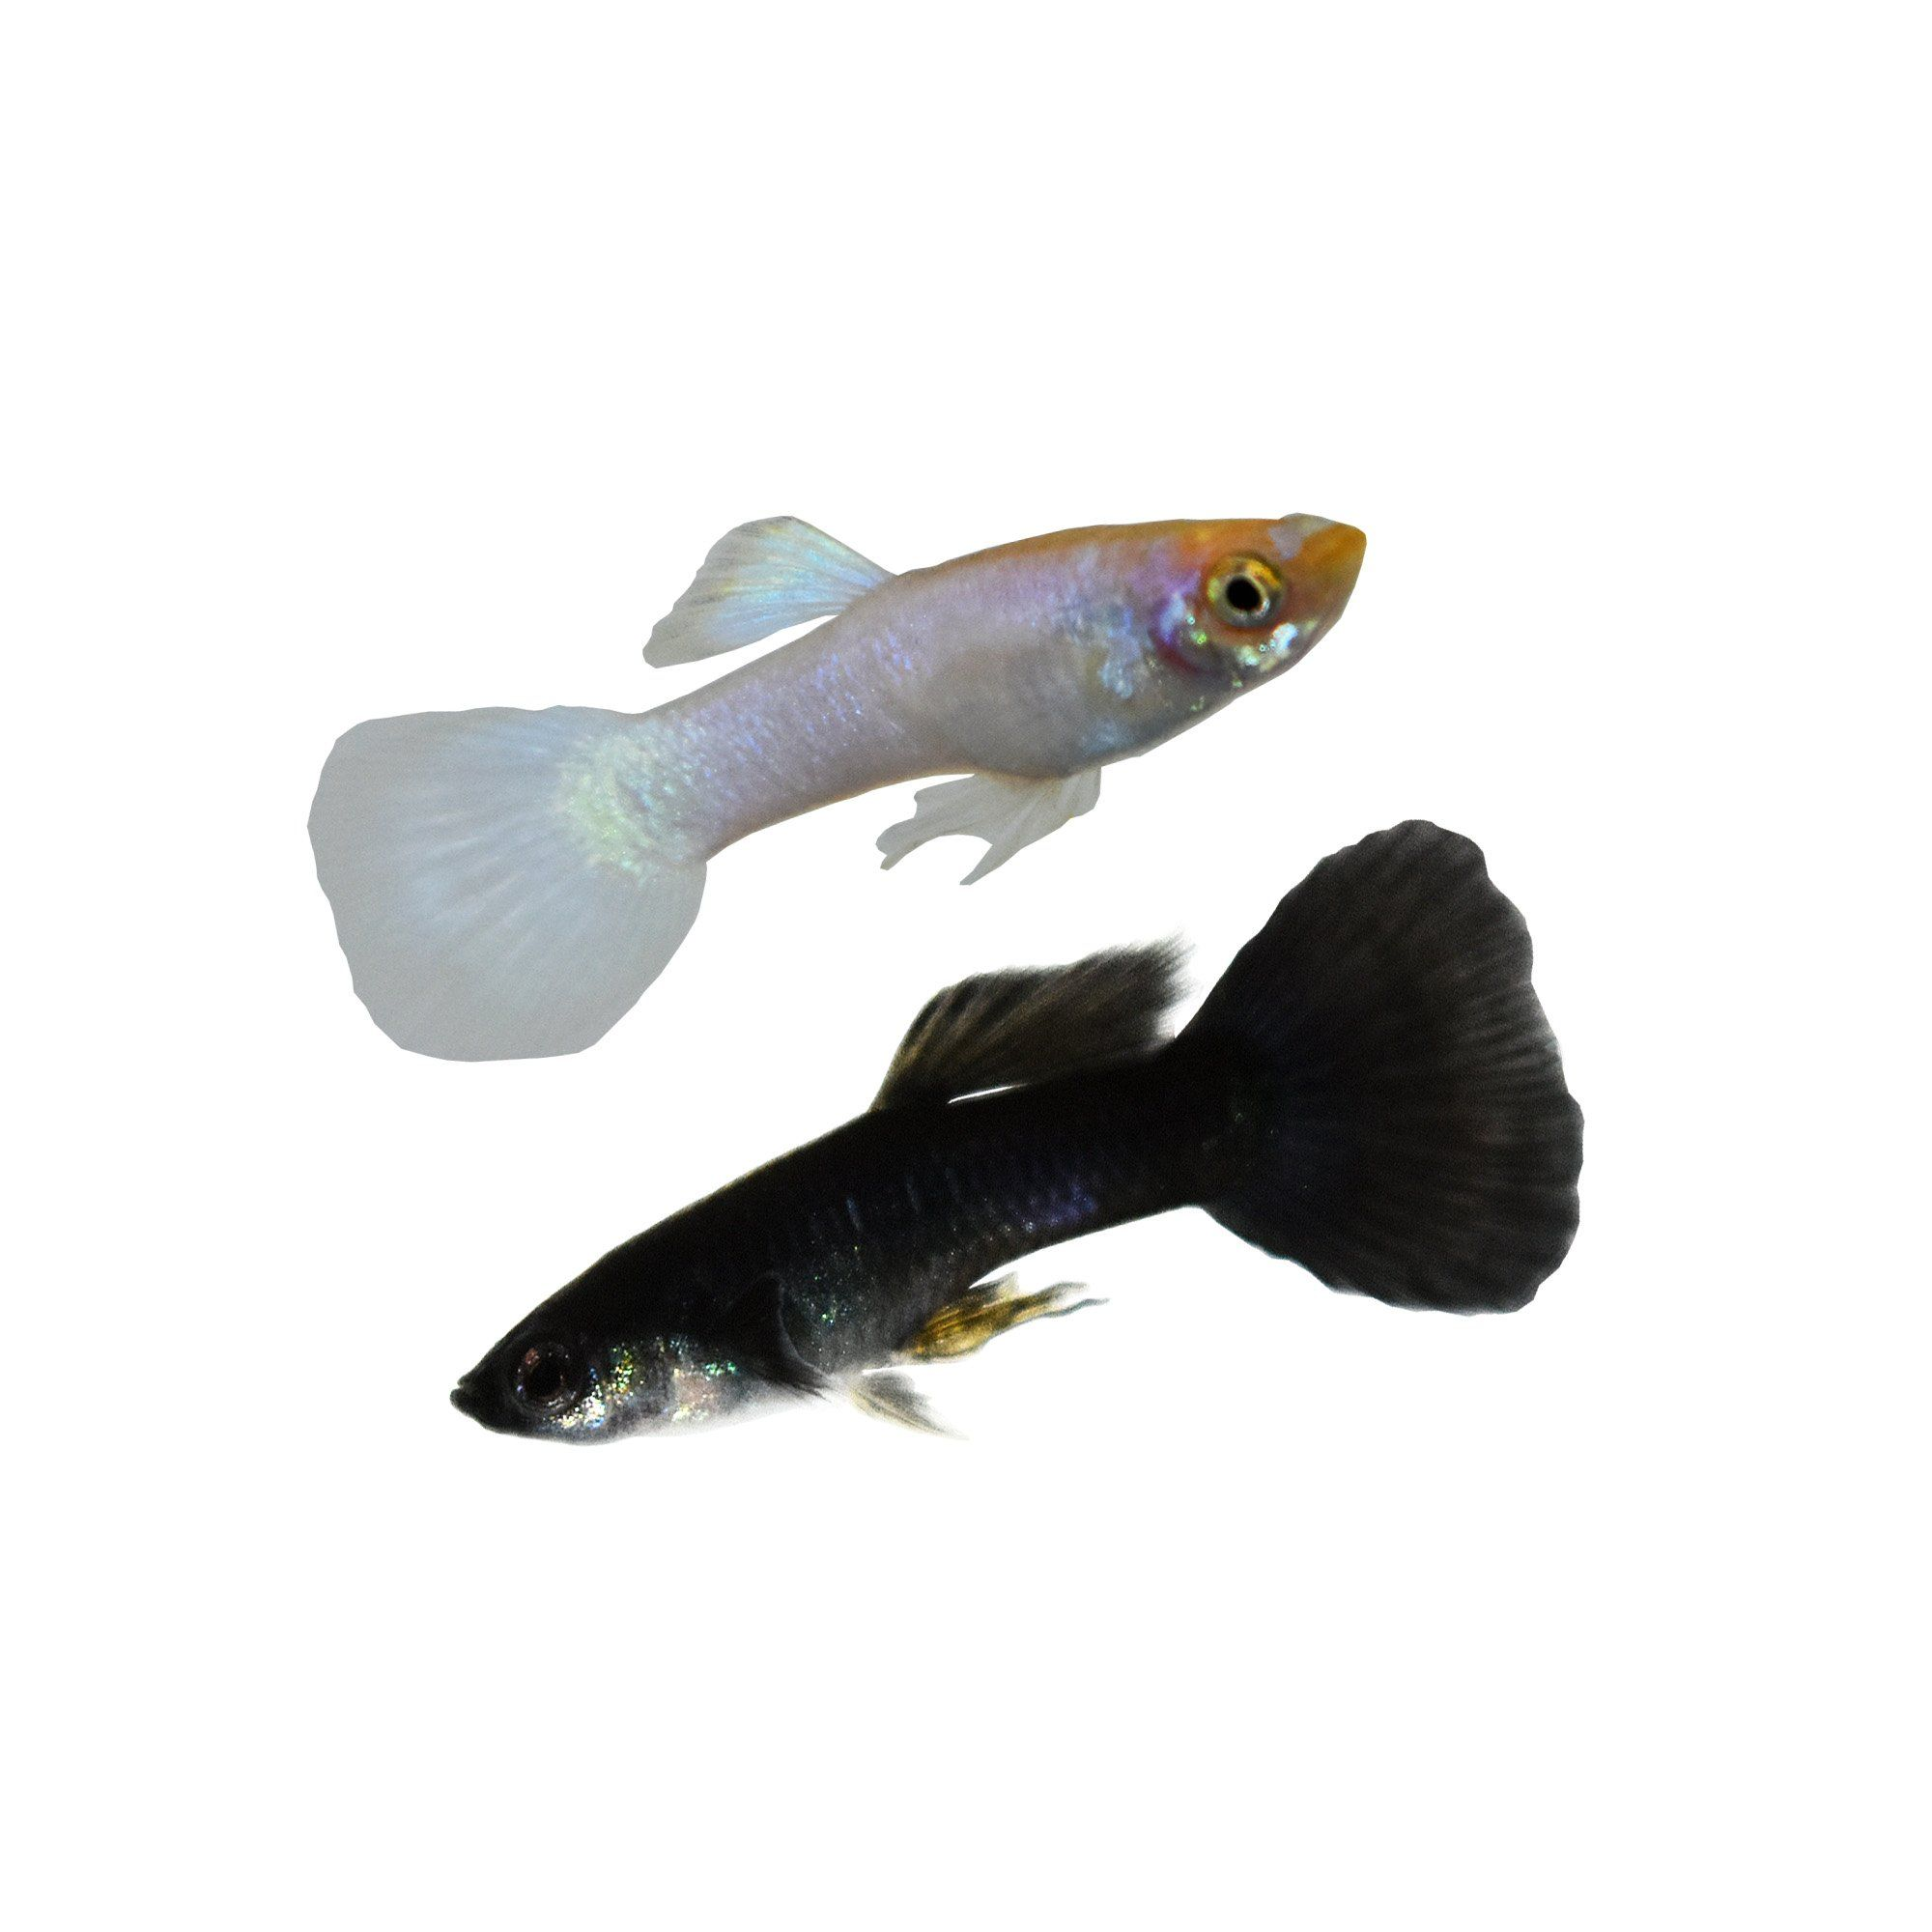 Male Yin Yang Guppys For Sale Order Online Petco Tropical Freshwater Fish Yin Yang Fish Guppy